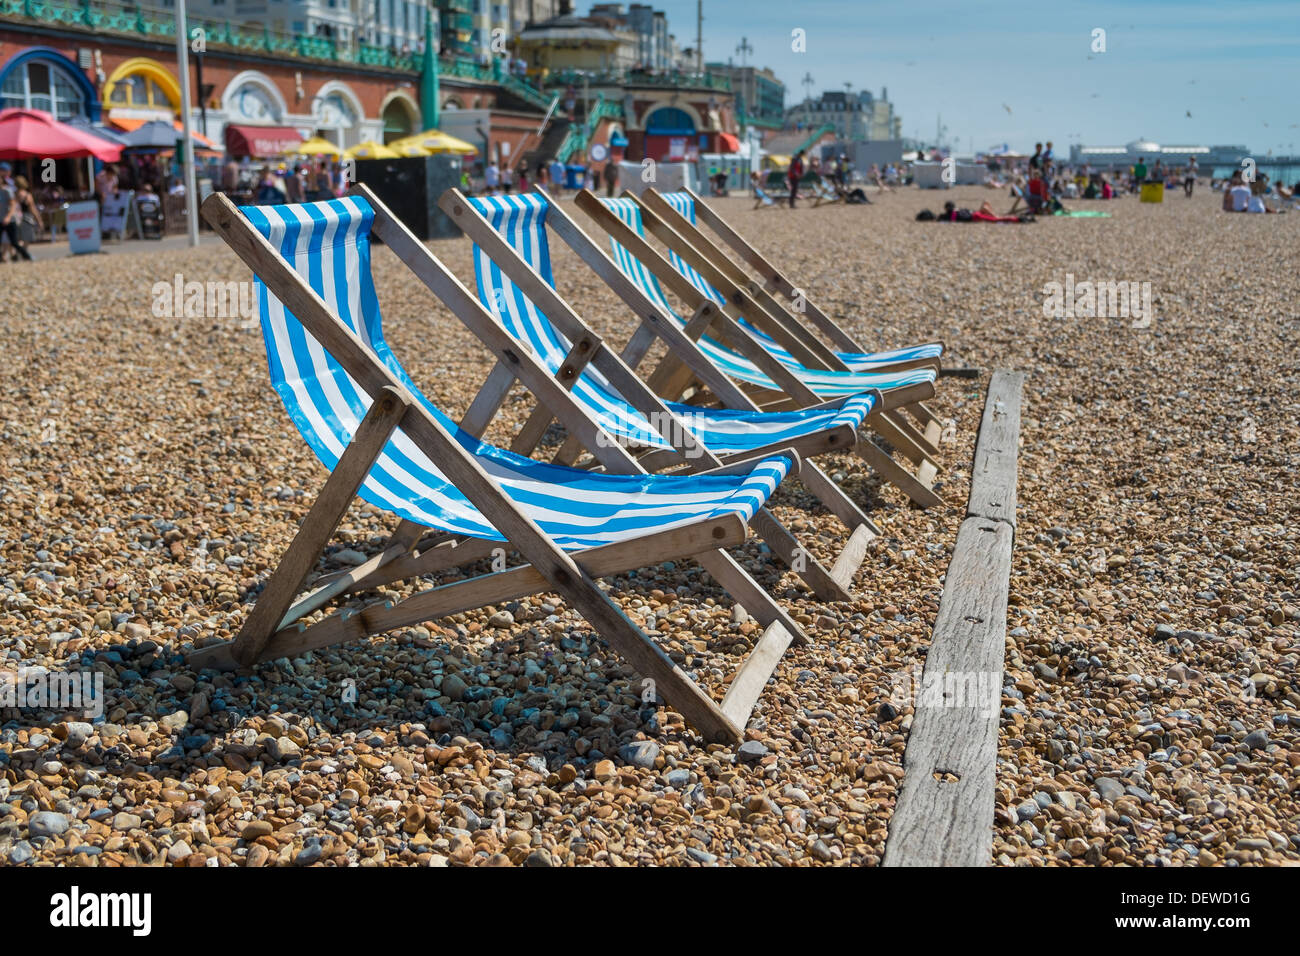 4 blue deck chairs on Brightons pebble beach - Stock Image